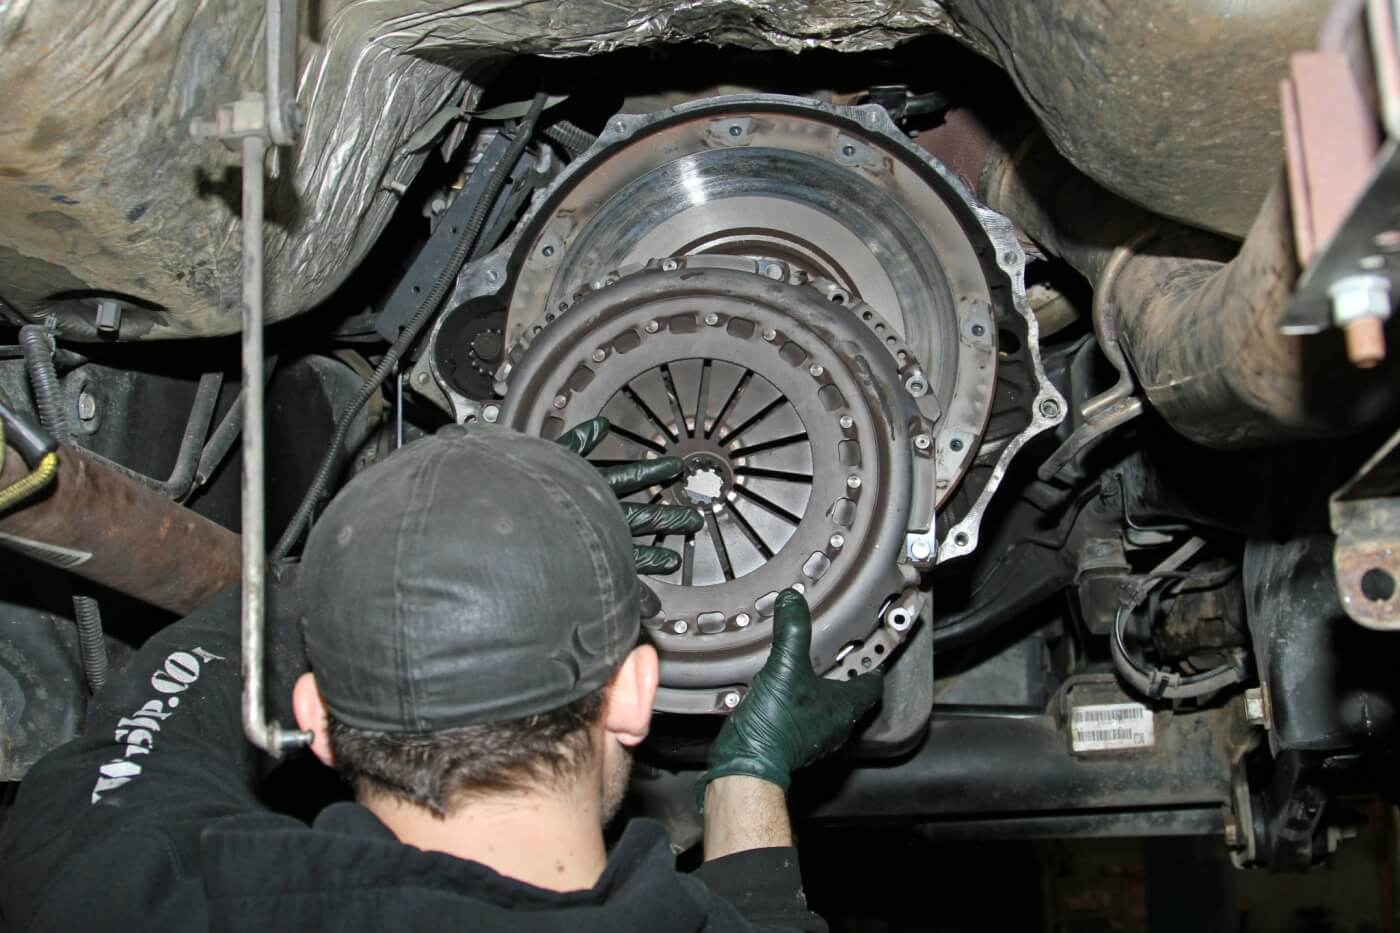 8. When he removed the pressure plate, Meraz noticed that there was some fairly significant heat build-up evident on the flywheel and pressure plate.